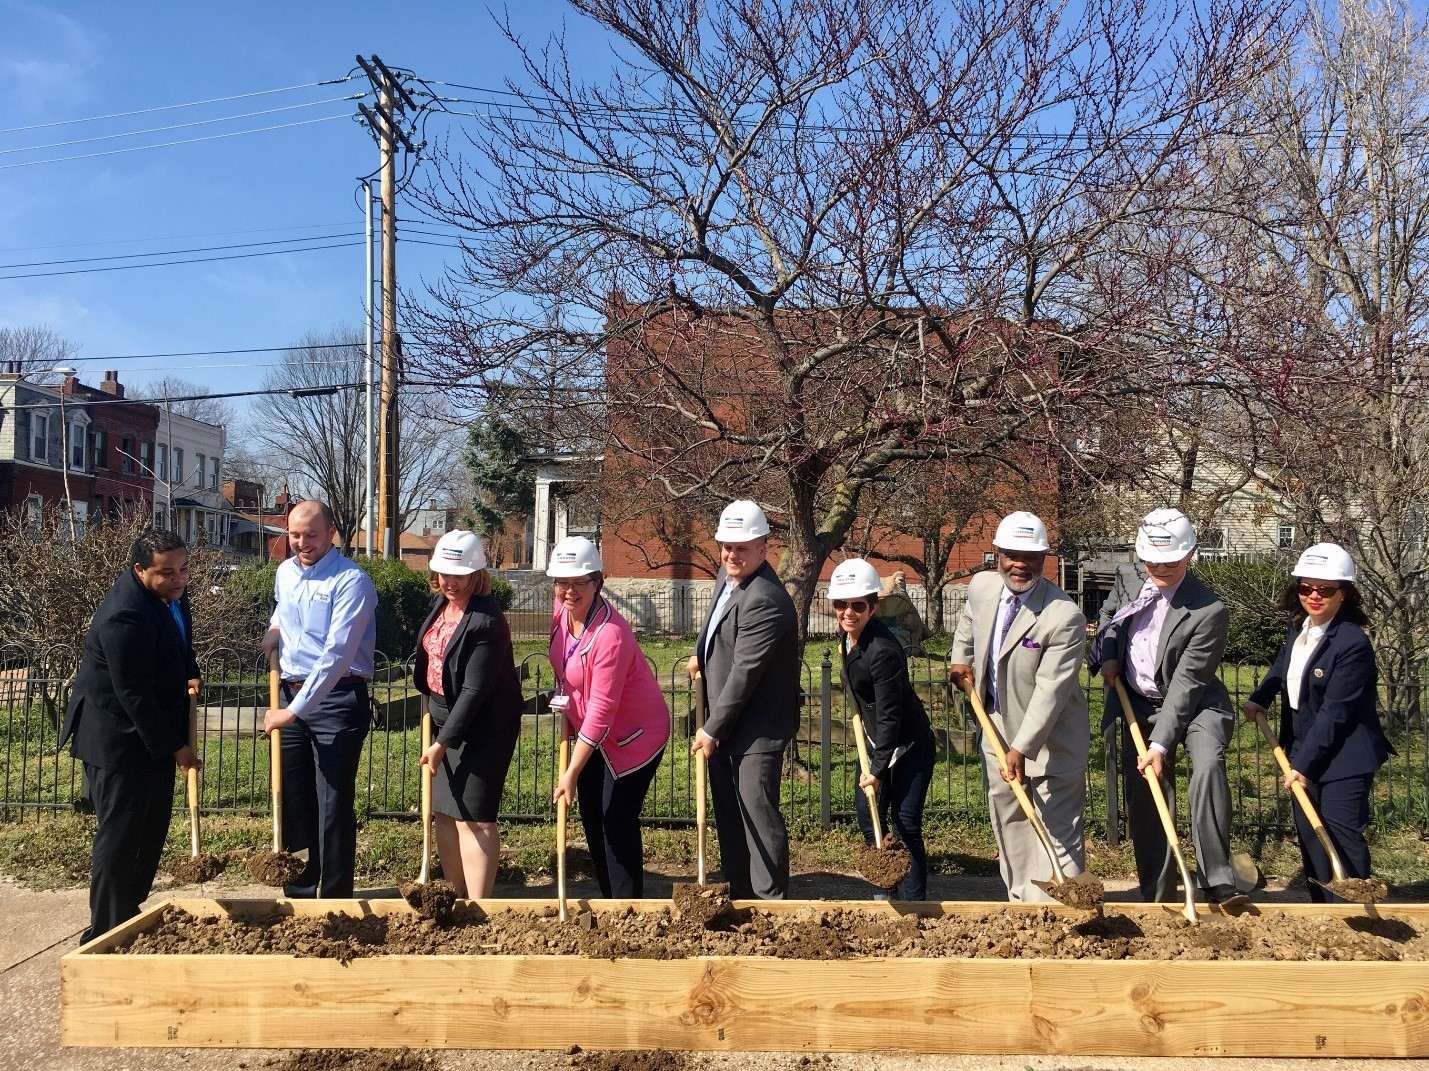 Photo from the Chippewa Park groundbreaking this spring with AHTF Coalition partners and elected officials. Chippewa Park is an $11m project with 46 new affordable homes coming to South St. Louis funded in part by AHTF dollars.